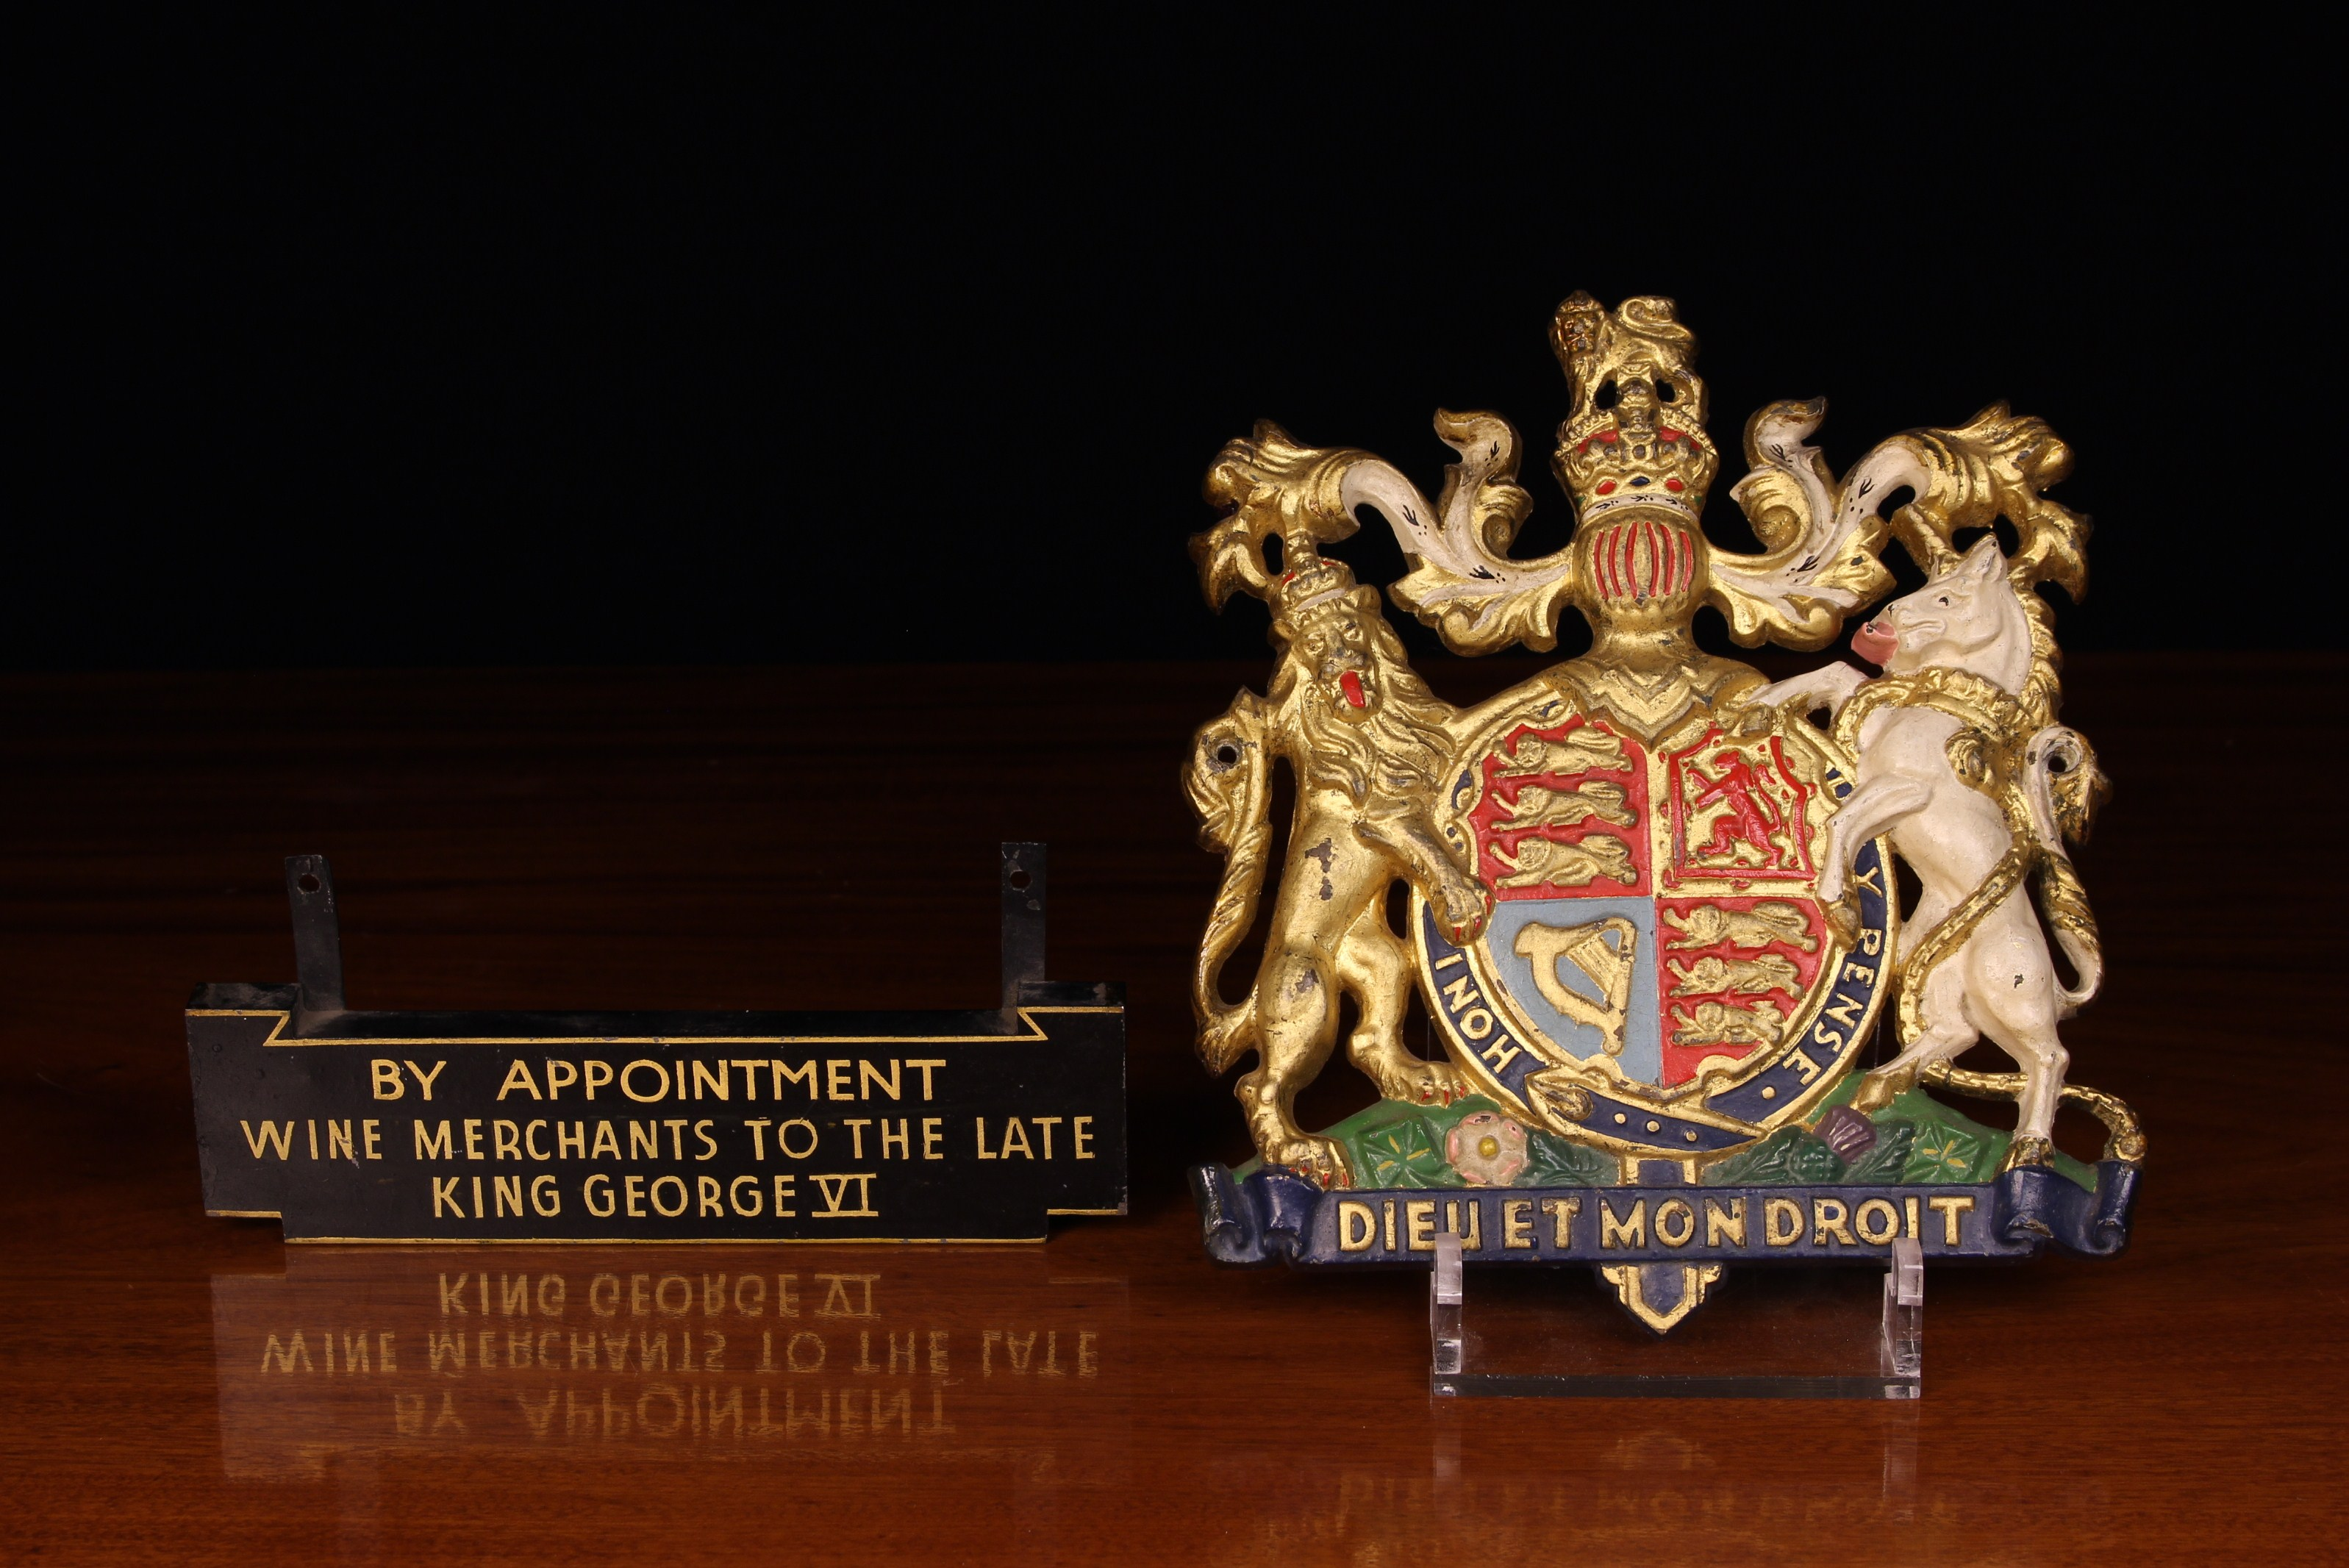 A Cast Metal Royal Crest enriched with vibrant polychrome paint-work and gilding with attached